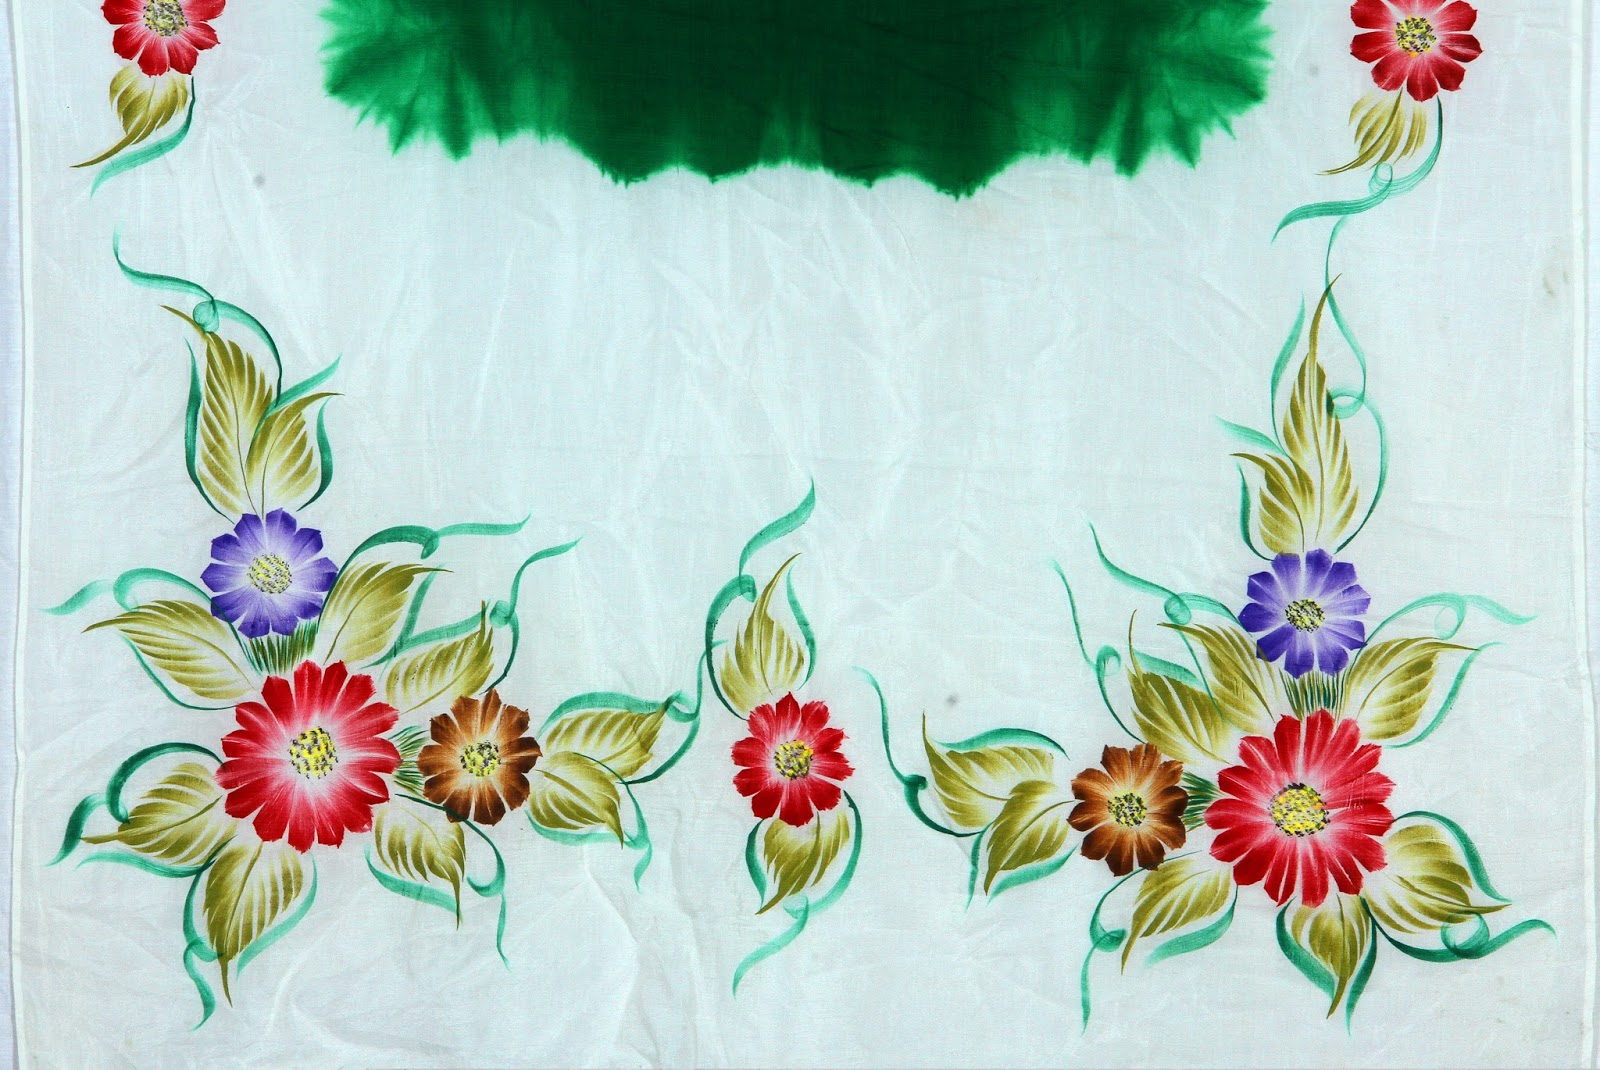 Cloth Painting Flower Designs 4k Pictures 4k Pictures Full Hq